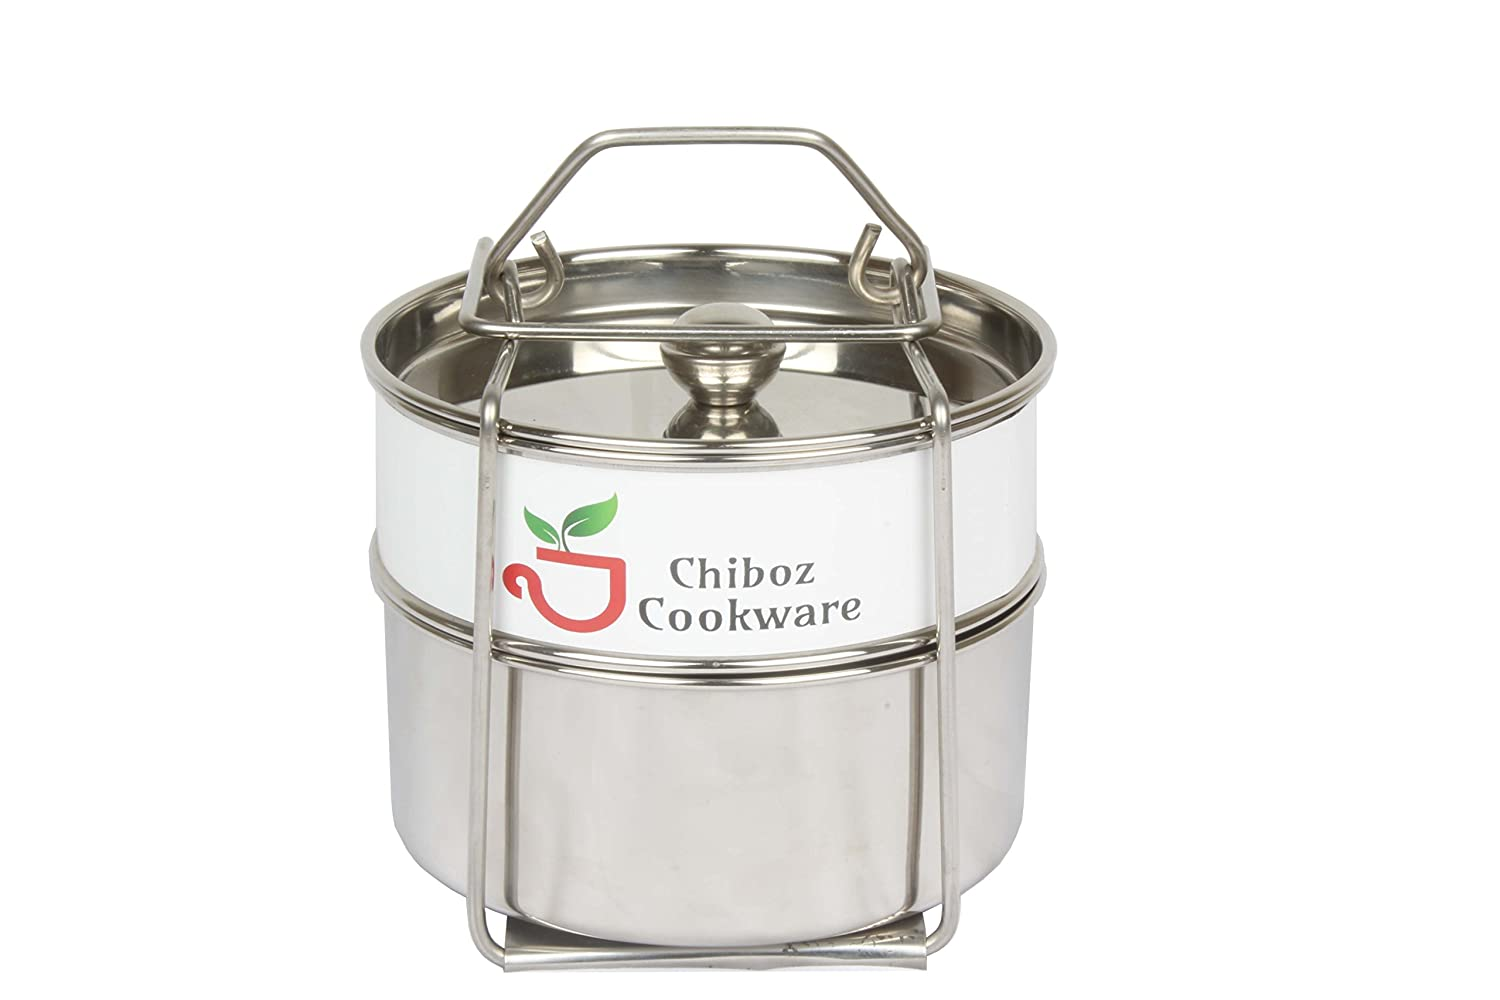 Chiboz Cookware Stackable Steamer Insert Pans with Sling Handle Compatible with Instant Pot 5 Qt